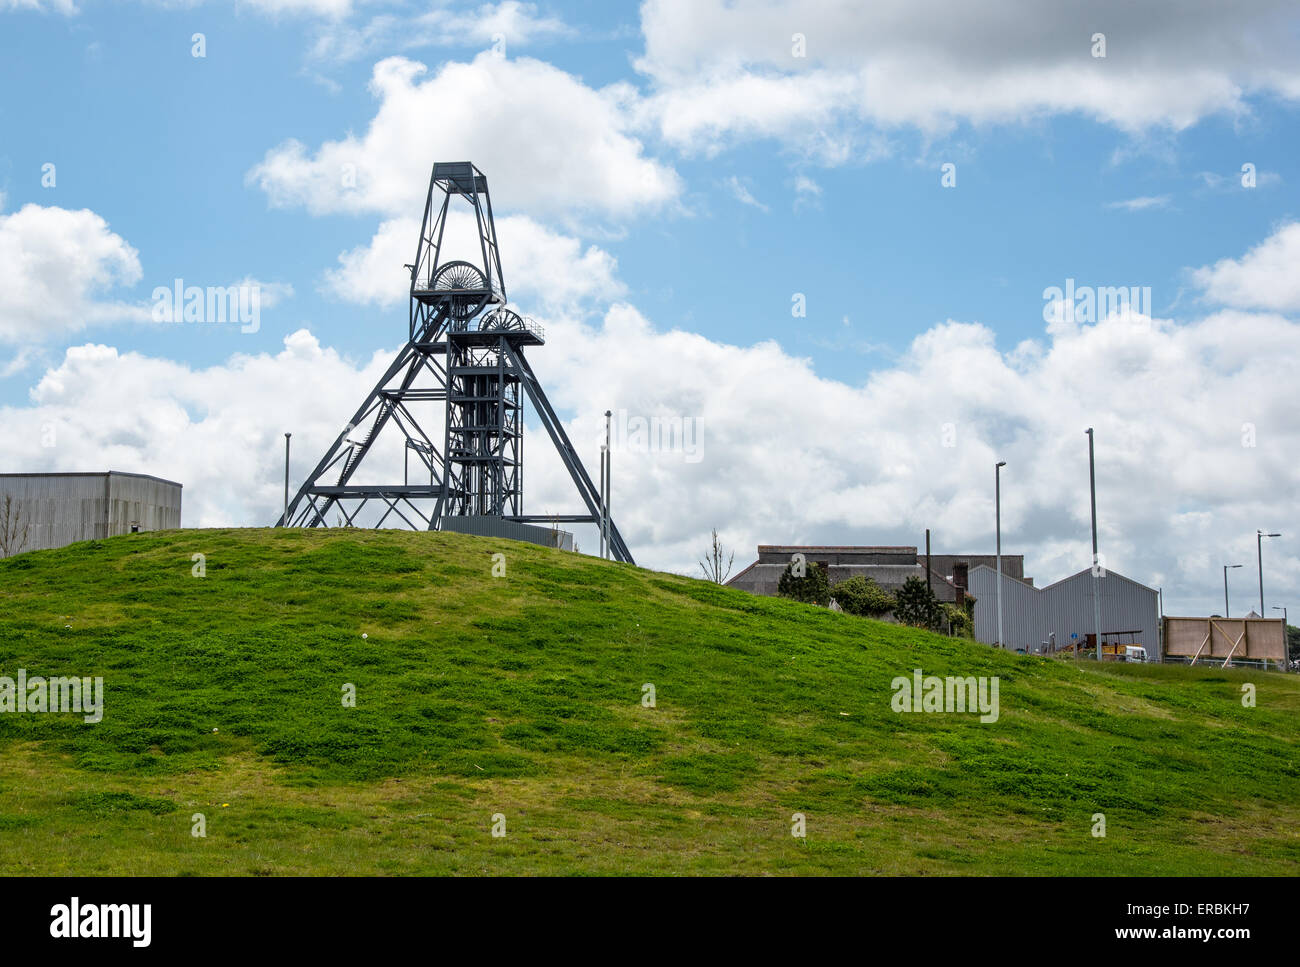 Cooks Kitchen Shaft Immagini   Cooks Kitchen Shaft Fotos Stock - Alamy a28ae7ebcf3a